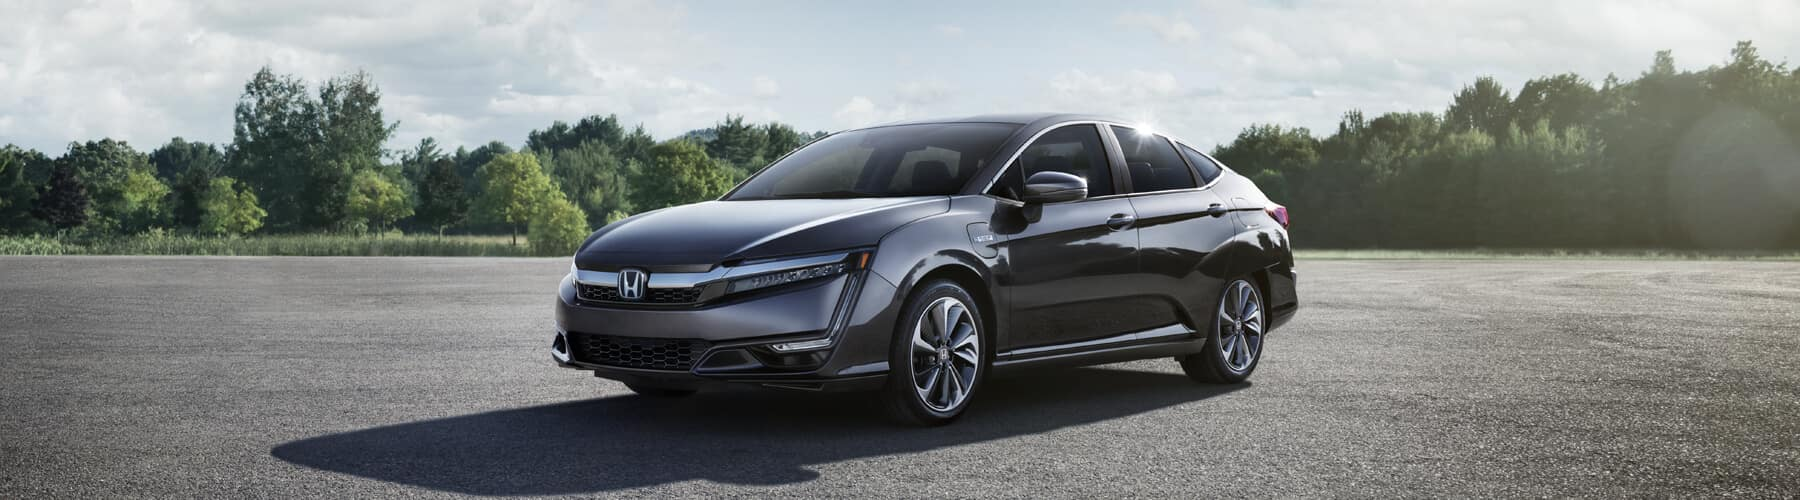 2018 Honda Clarity Plug-In Hybrid Slider